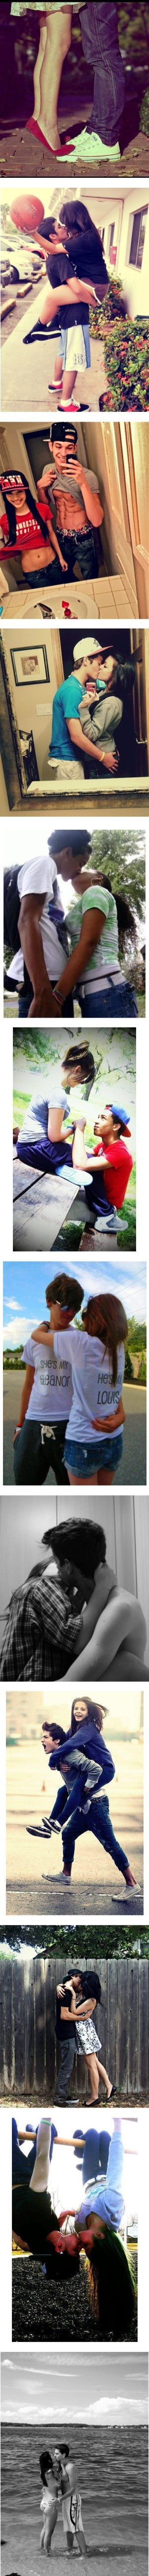 """Le Cute Couples 3"" by hes-to-purdy-for-you ❤ liked on Polyvore. I just realized that the girl on the guy's back is one of my Facebook friends lol"